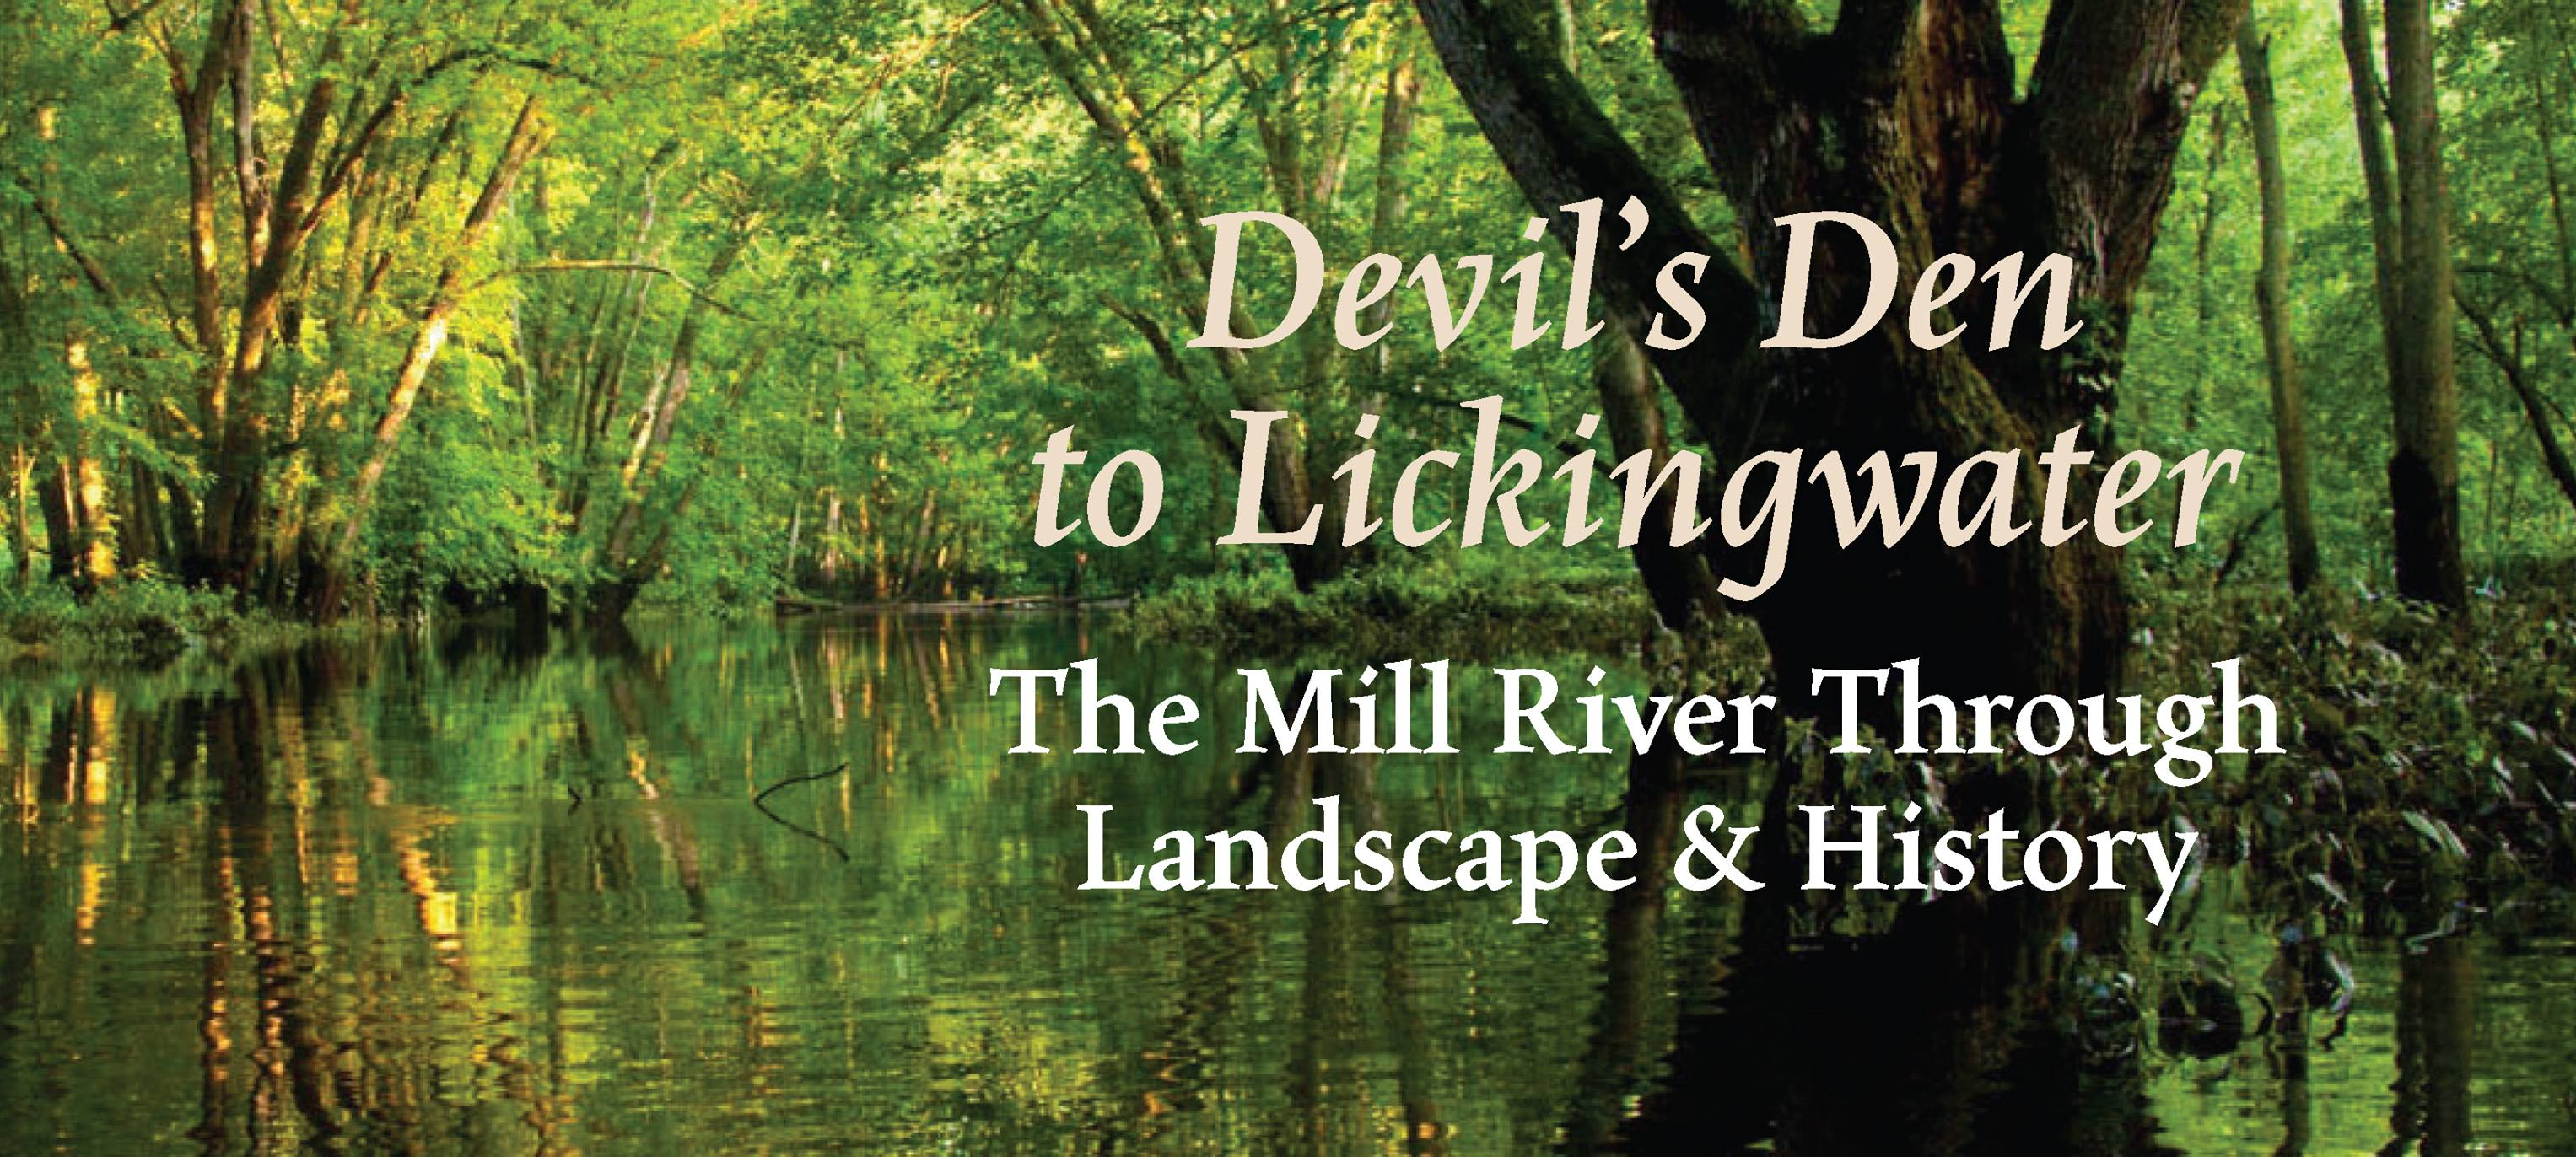 Devils-Den-to-Licking-Water